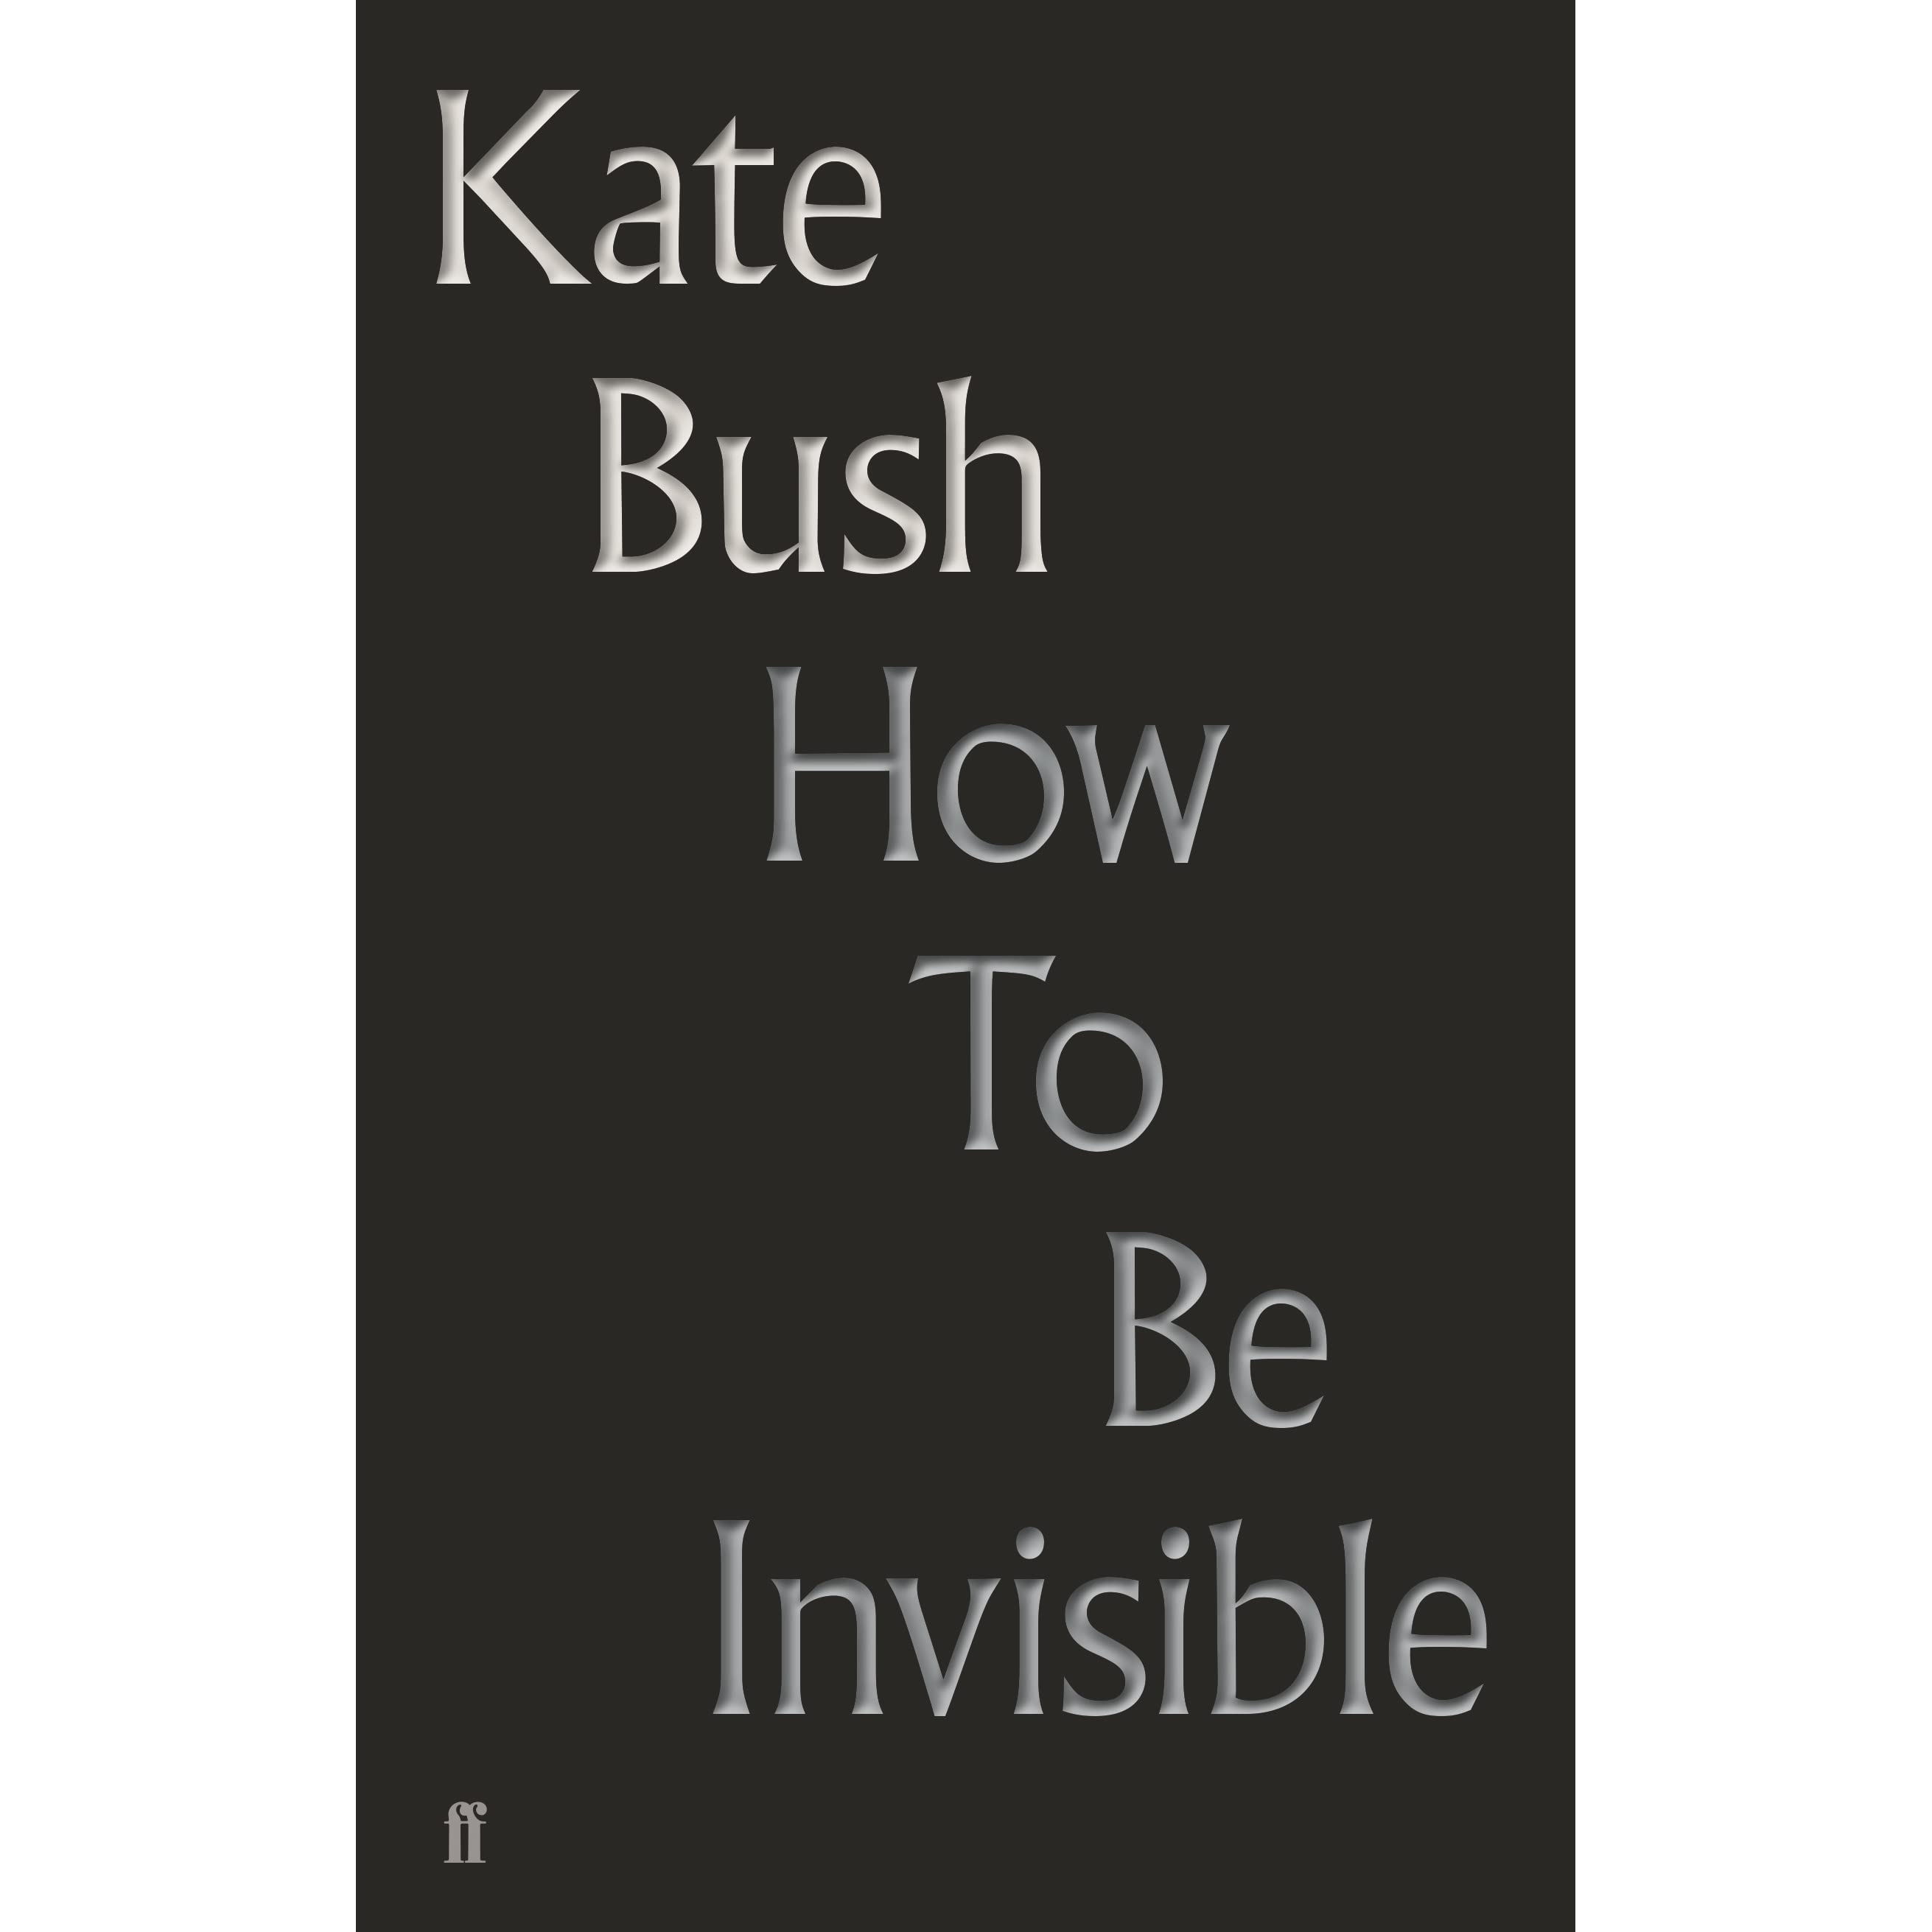 How To Be Invisible by Kate Bush